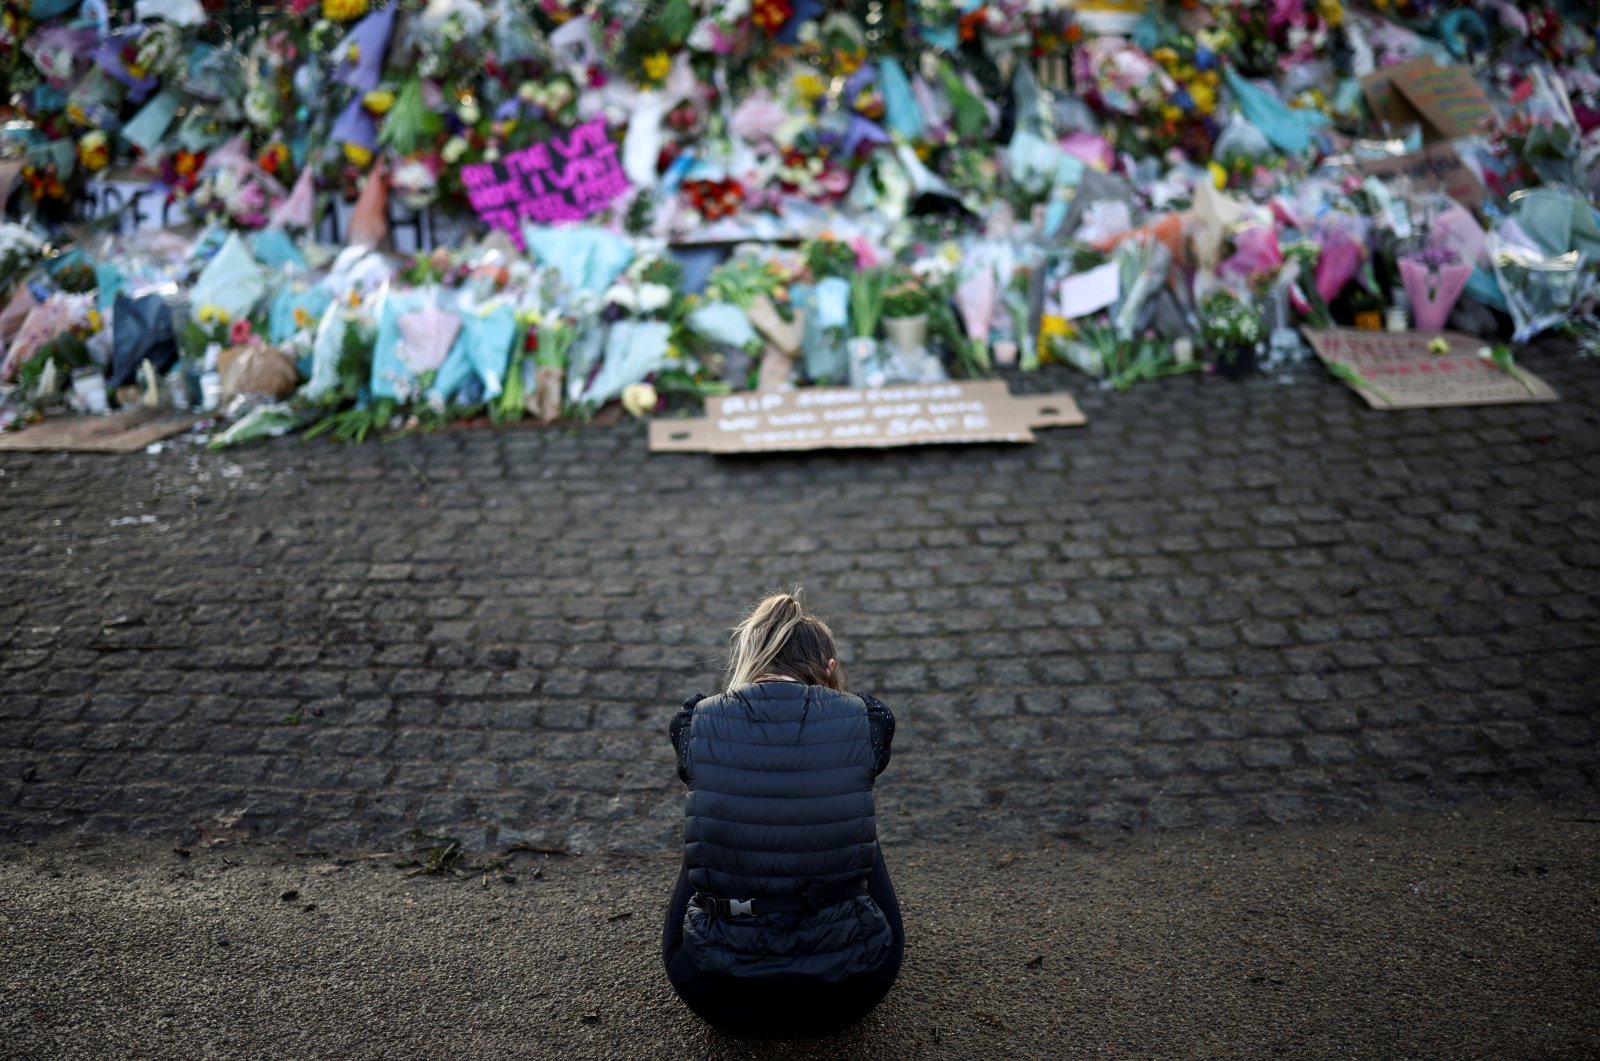 A mourner sits in front of a memorial site at the Clapham Common Bandstand, following the kidnap and murder of Sarah Everard, in London, Britain, March 14, 2021. (Reuters Photo)